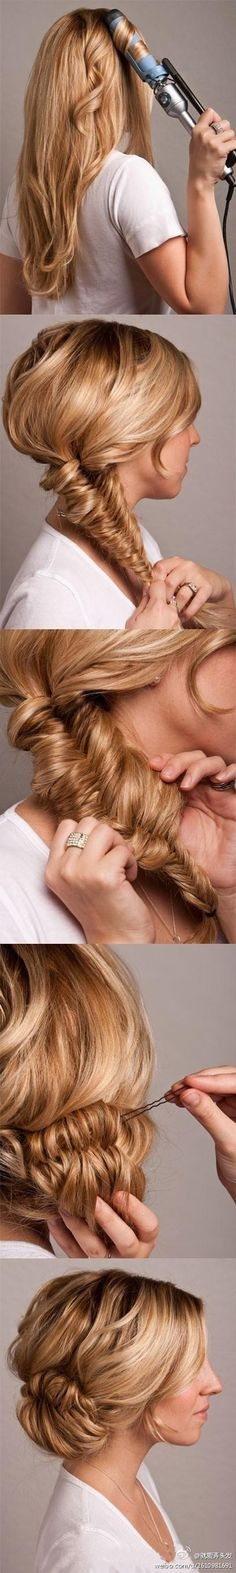 if only I was actually capable of curling my own hair and knew how to do a fishtail braid...